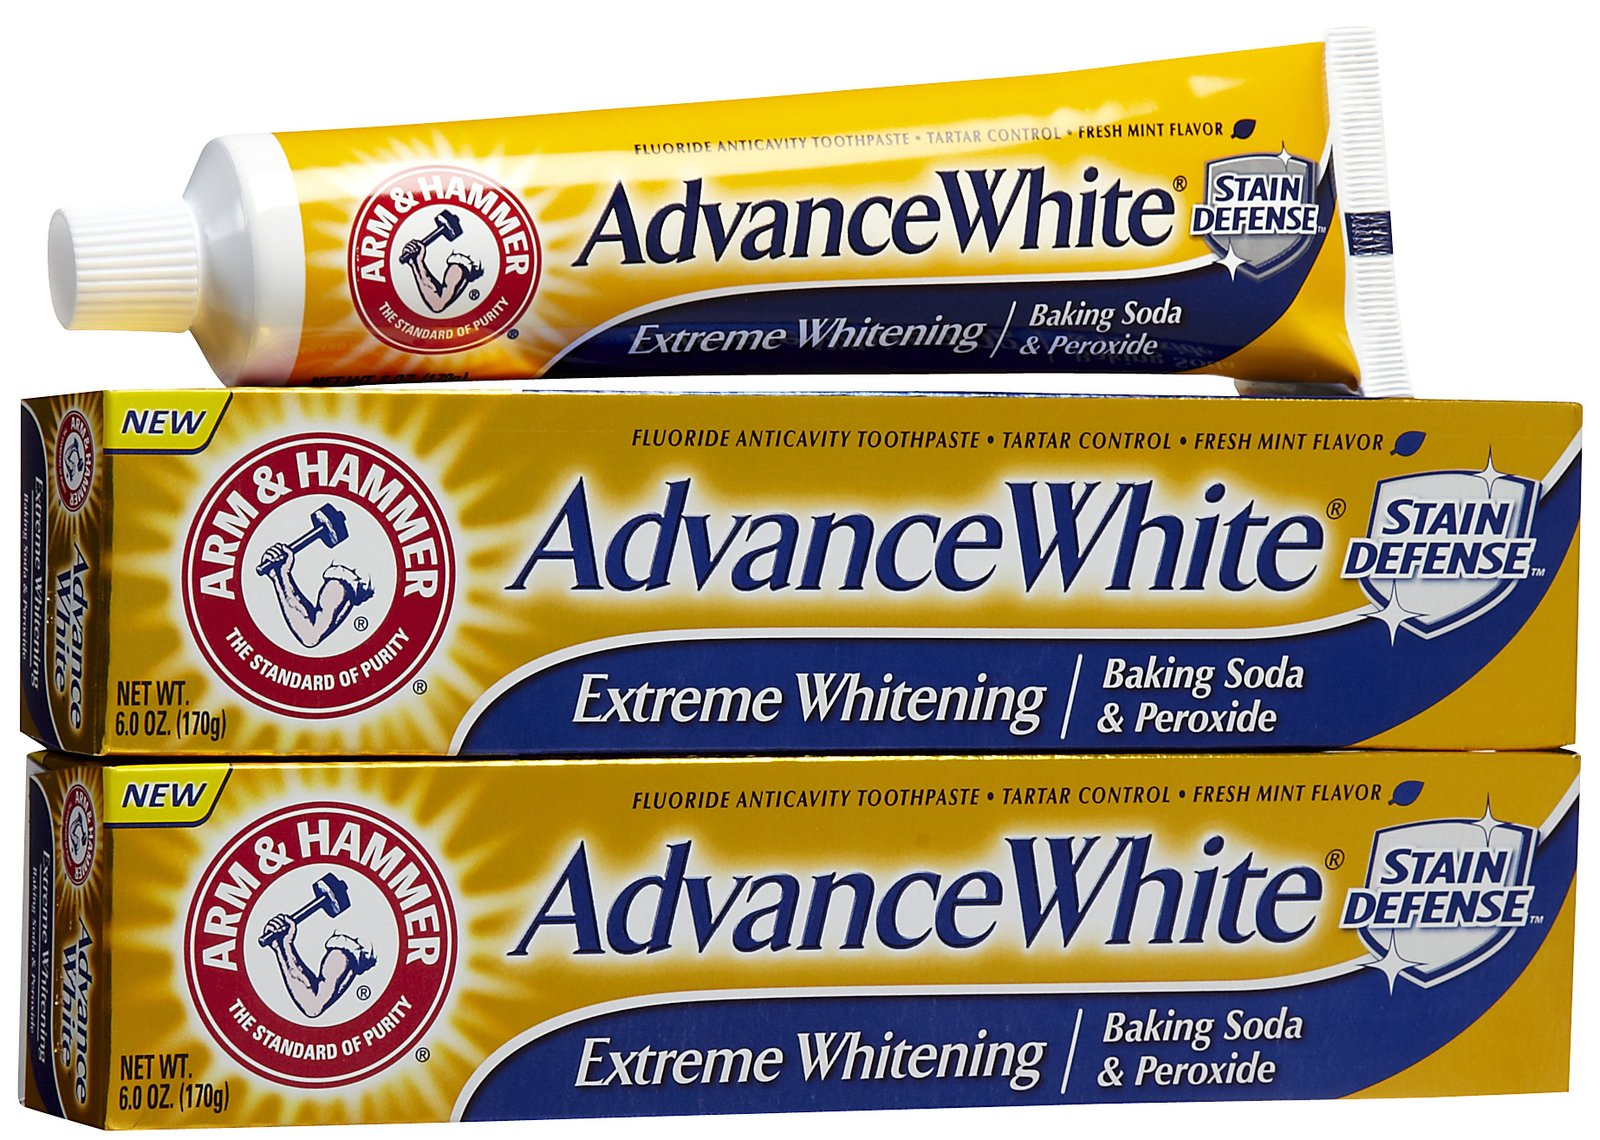 arm and hammer - Dentifrice Arm & Hammer à 75¢ après coupon